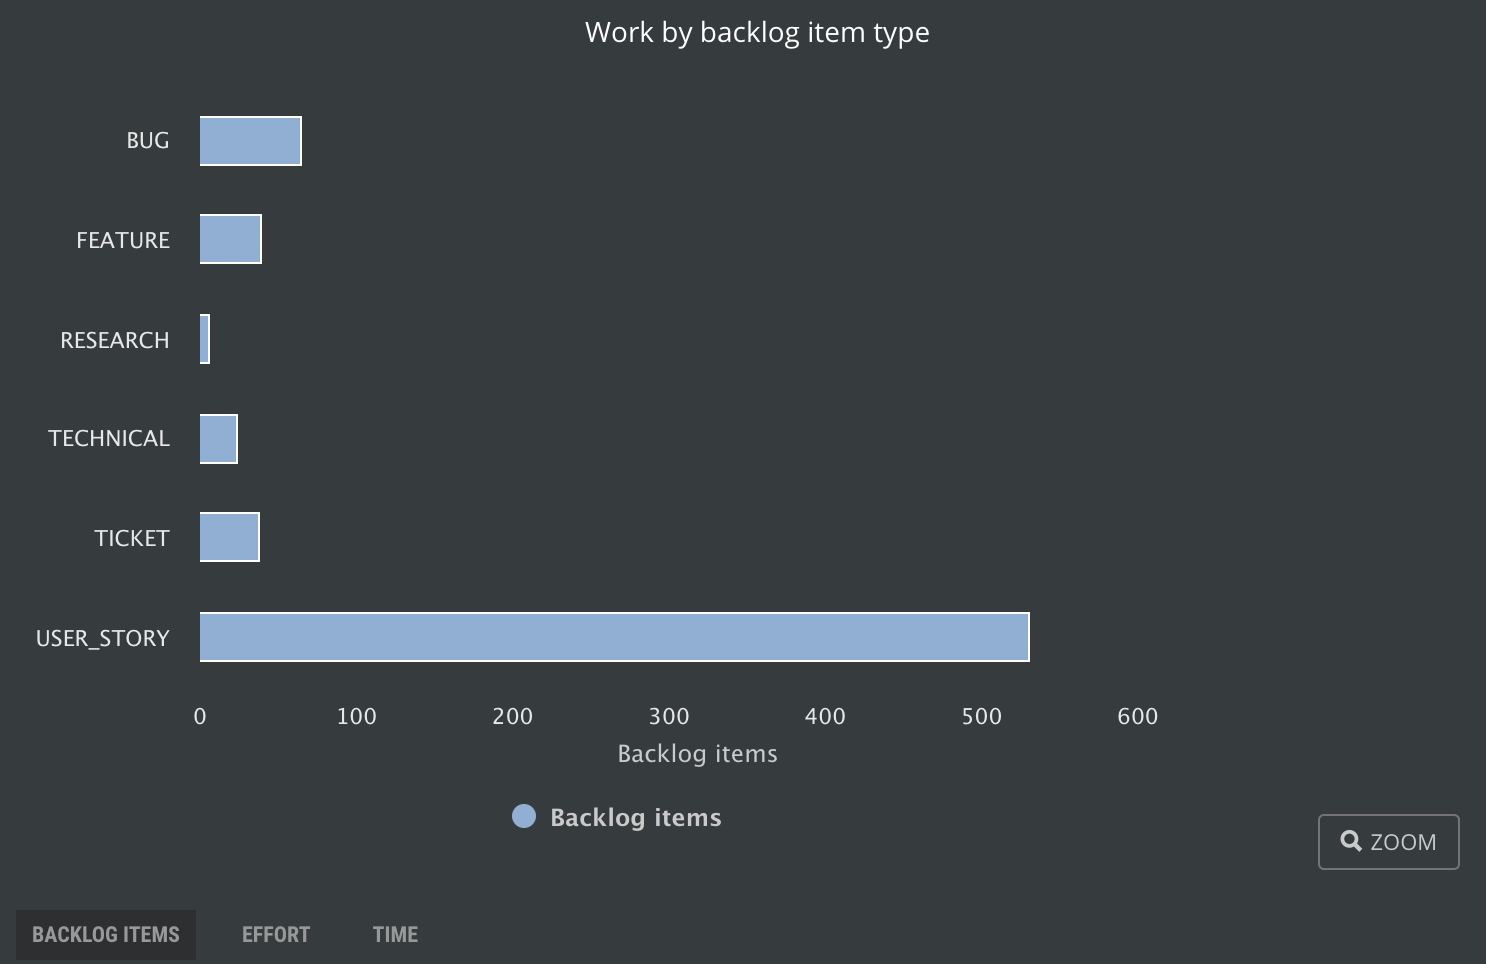 Work by backlog item type type, count of items